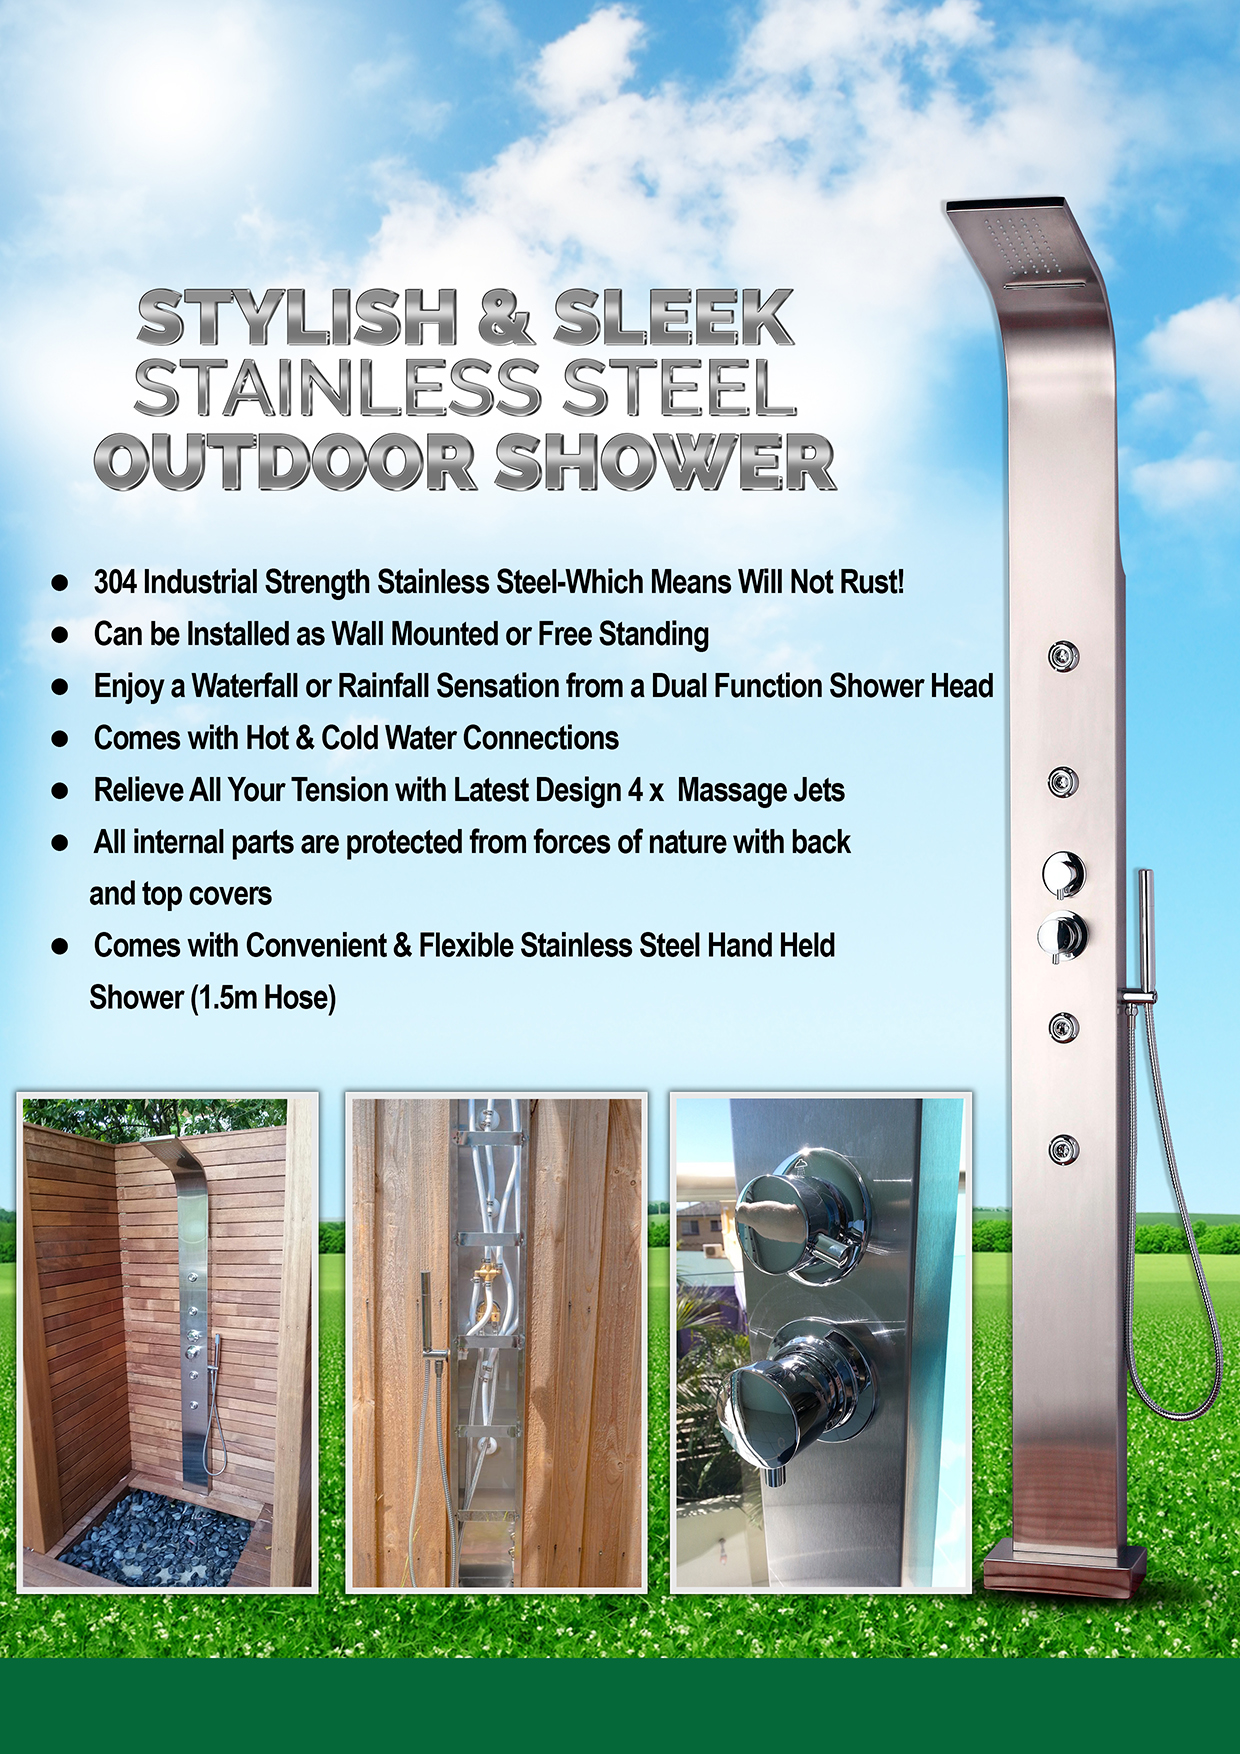 AUCTION BRIGHTON OUTDOOR SHOWER